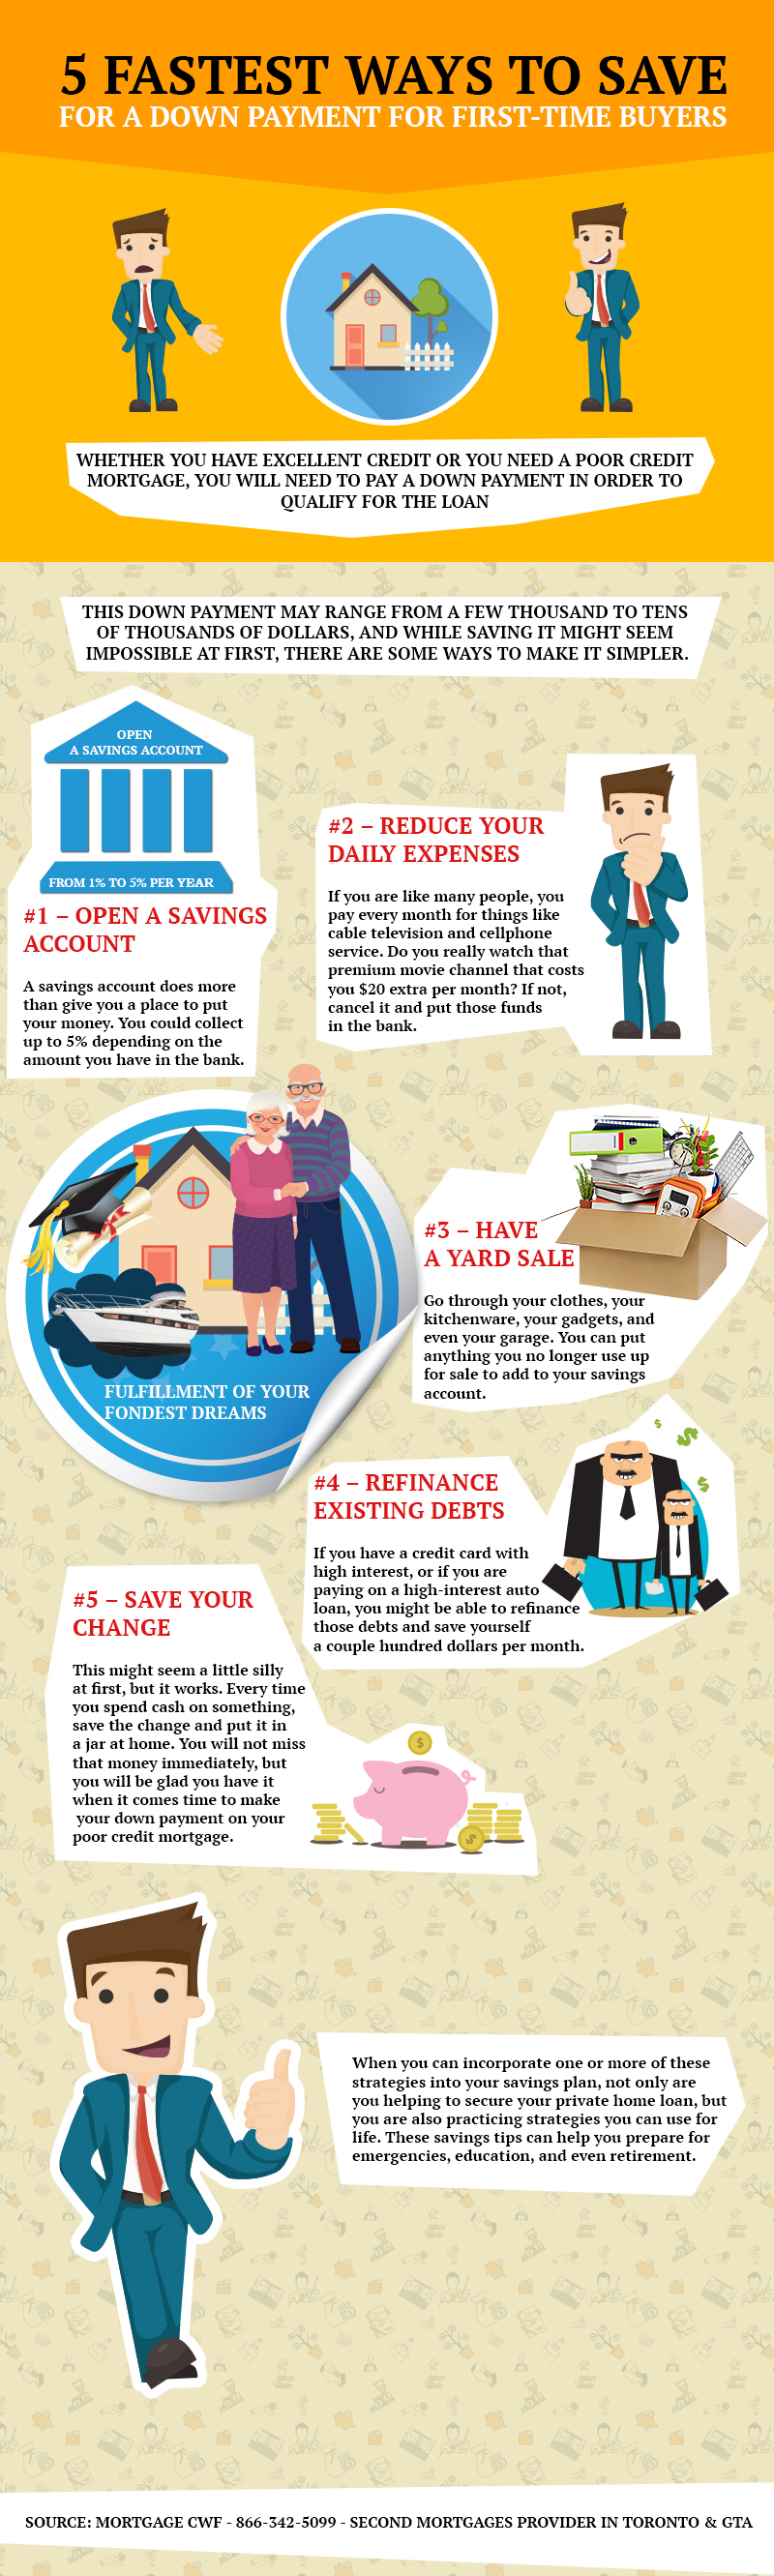 5-fastest-ways-to-save-for-a-down-payment-for-firsttime-buyers_5620be5b876c4